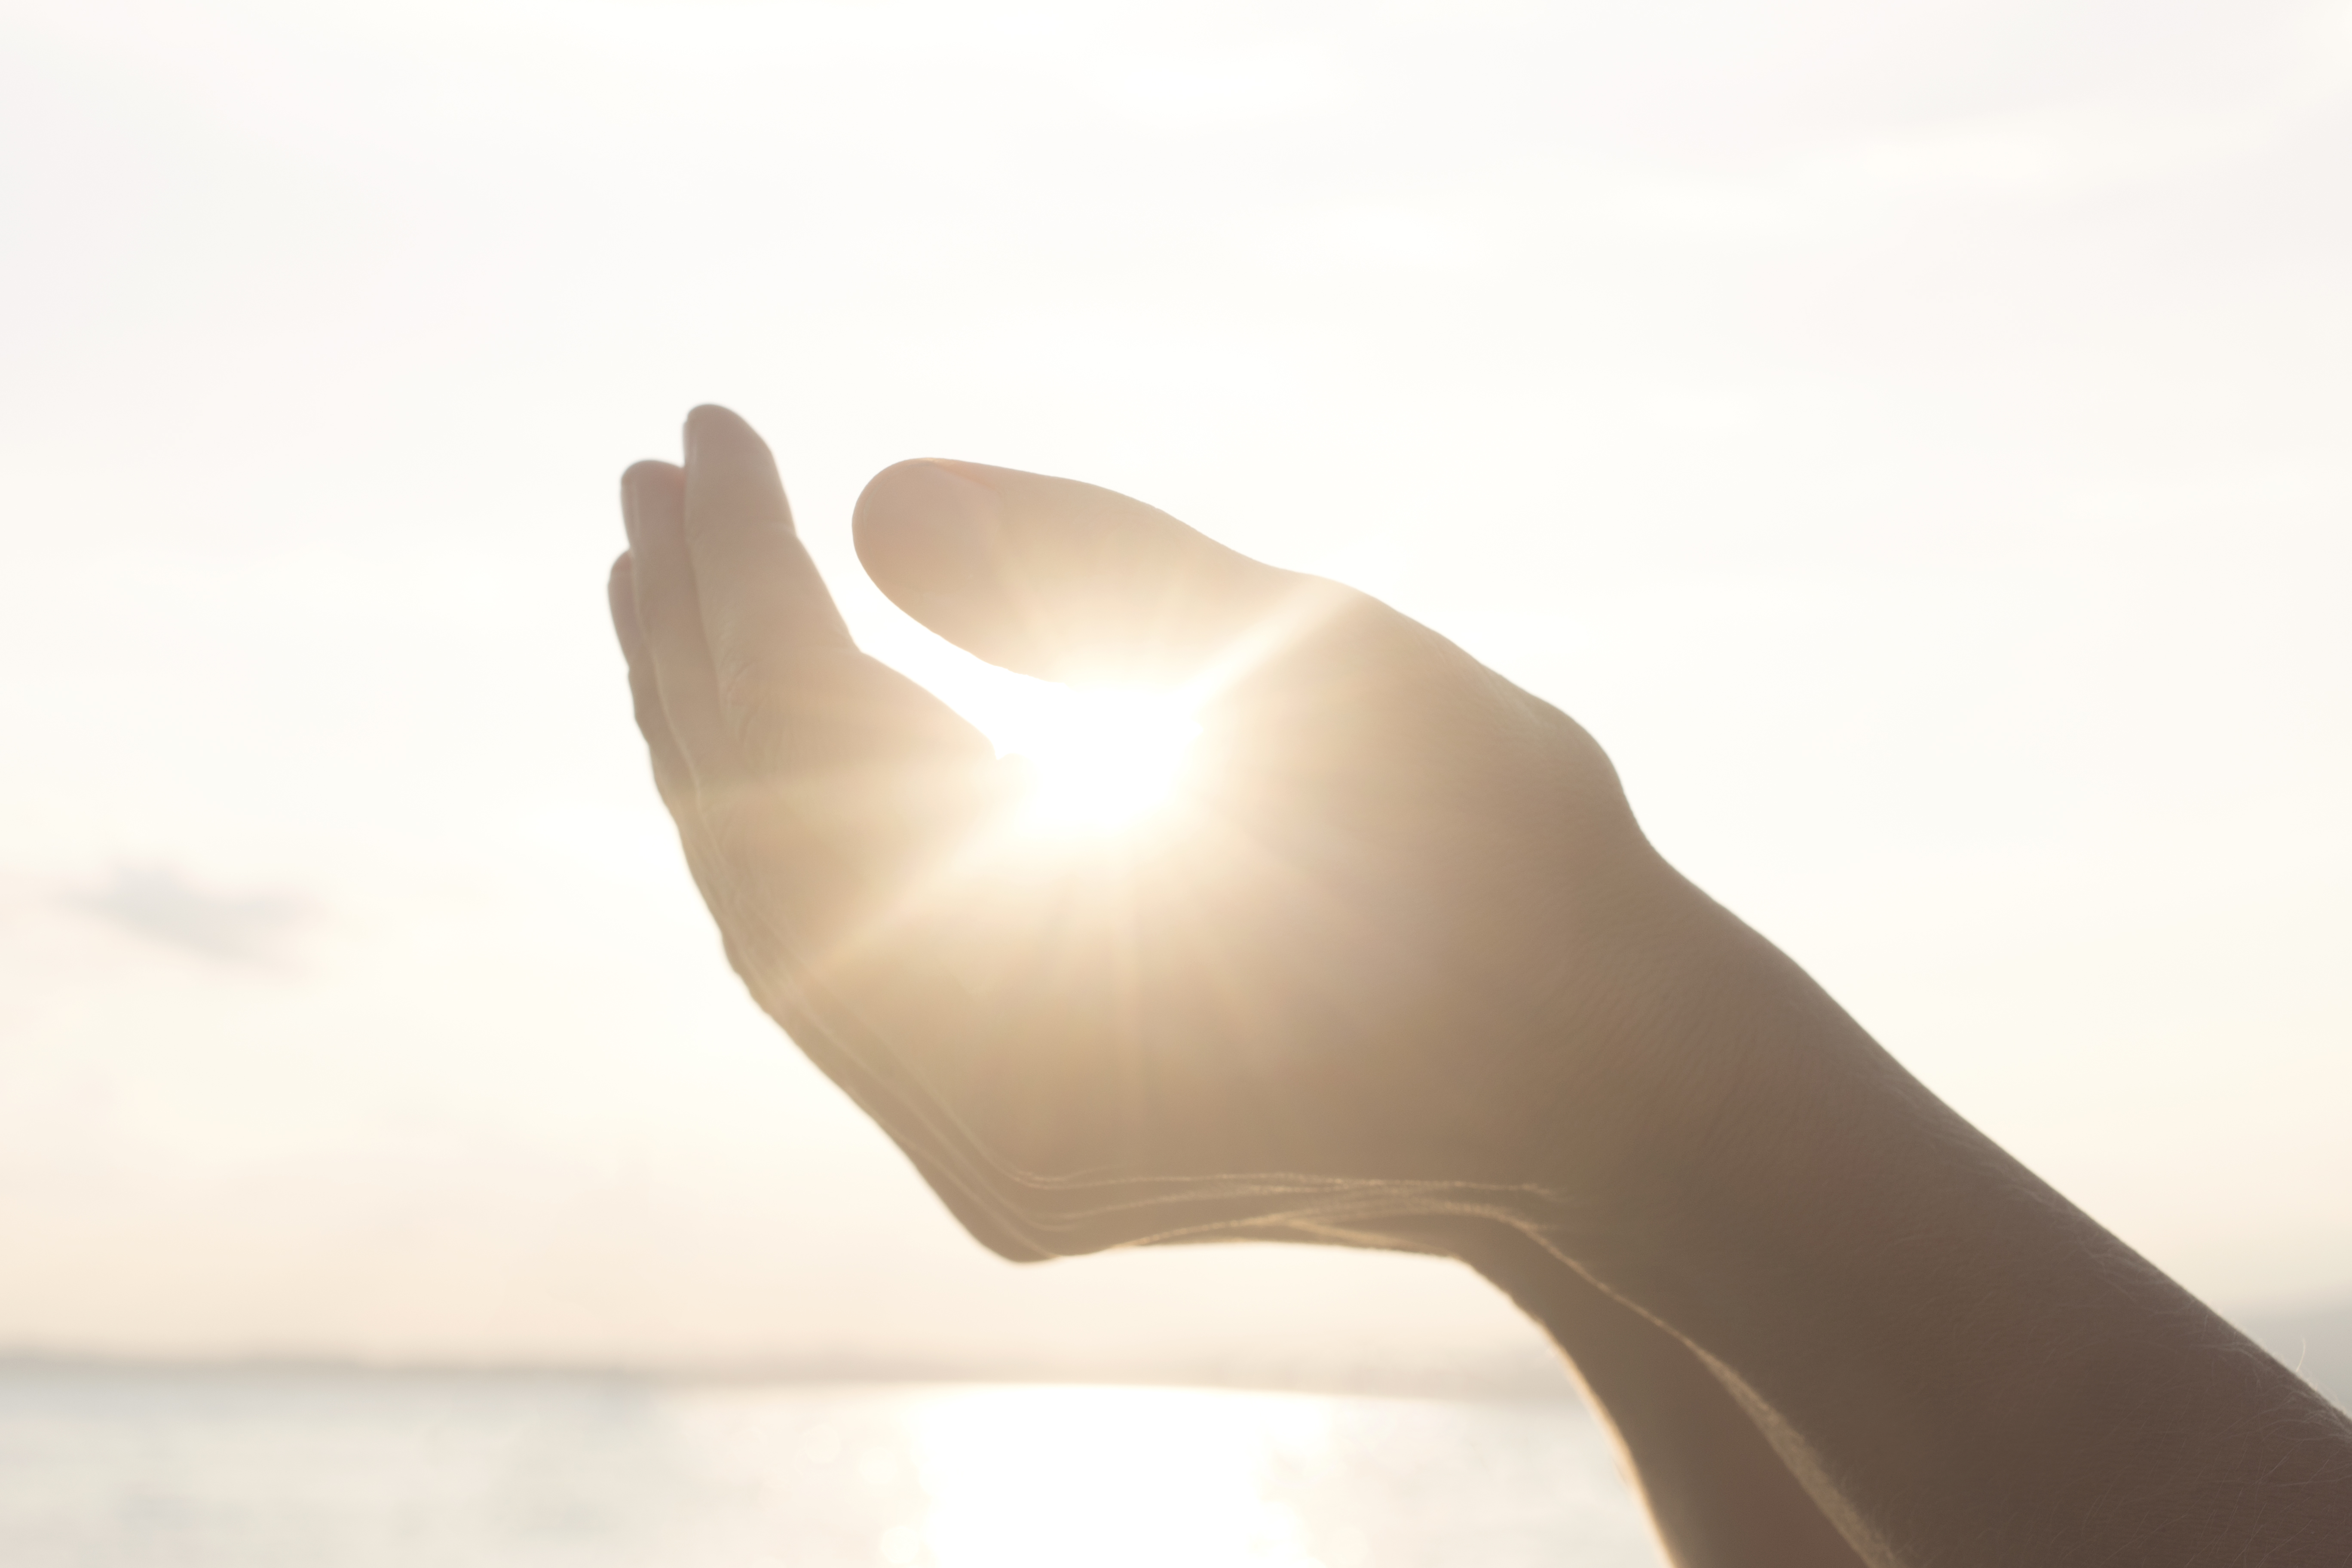 woman's hands hold the sun and its energy